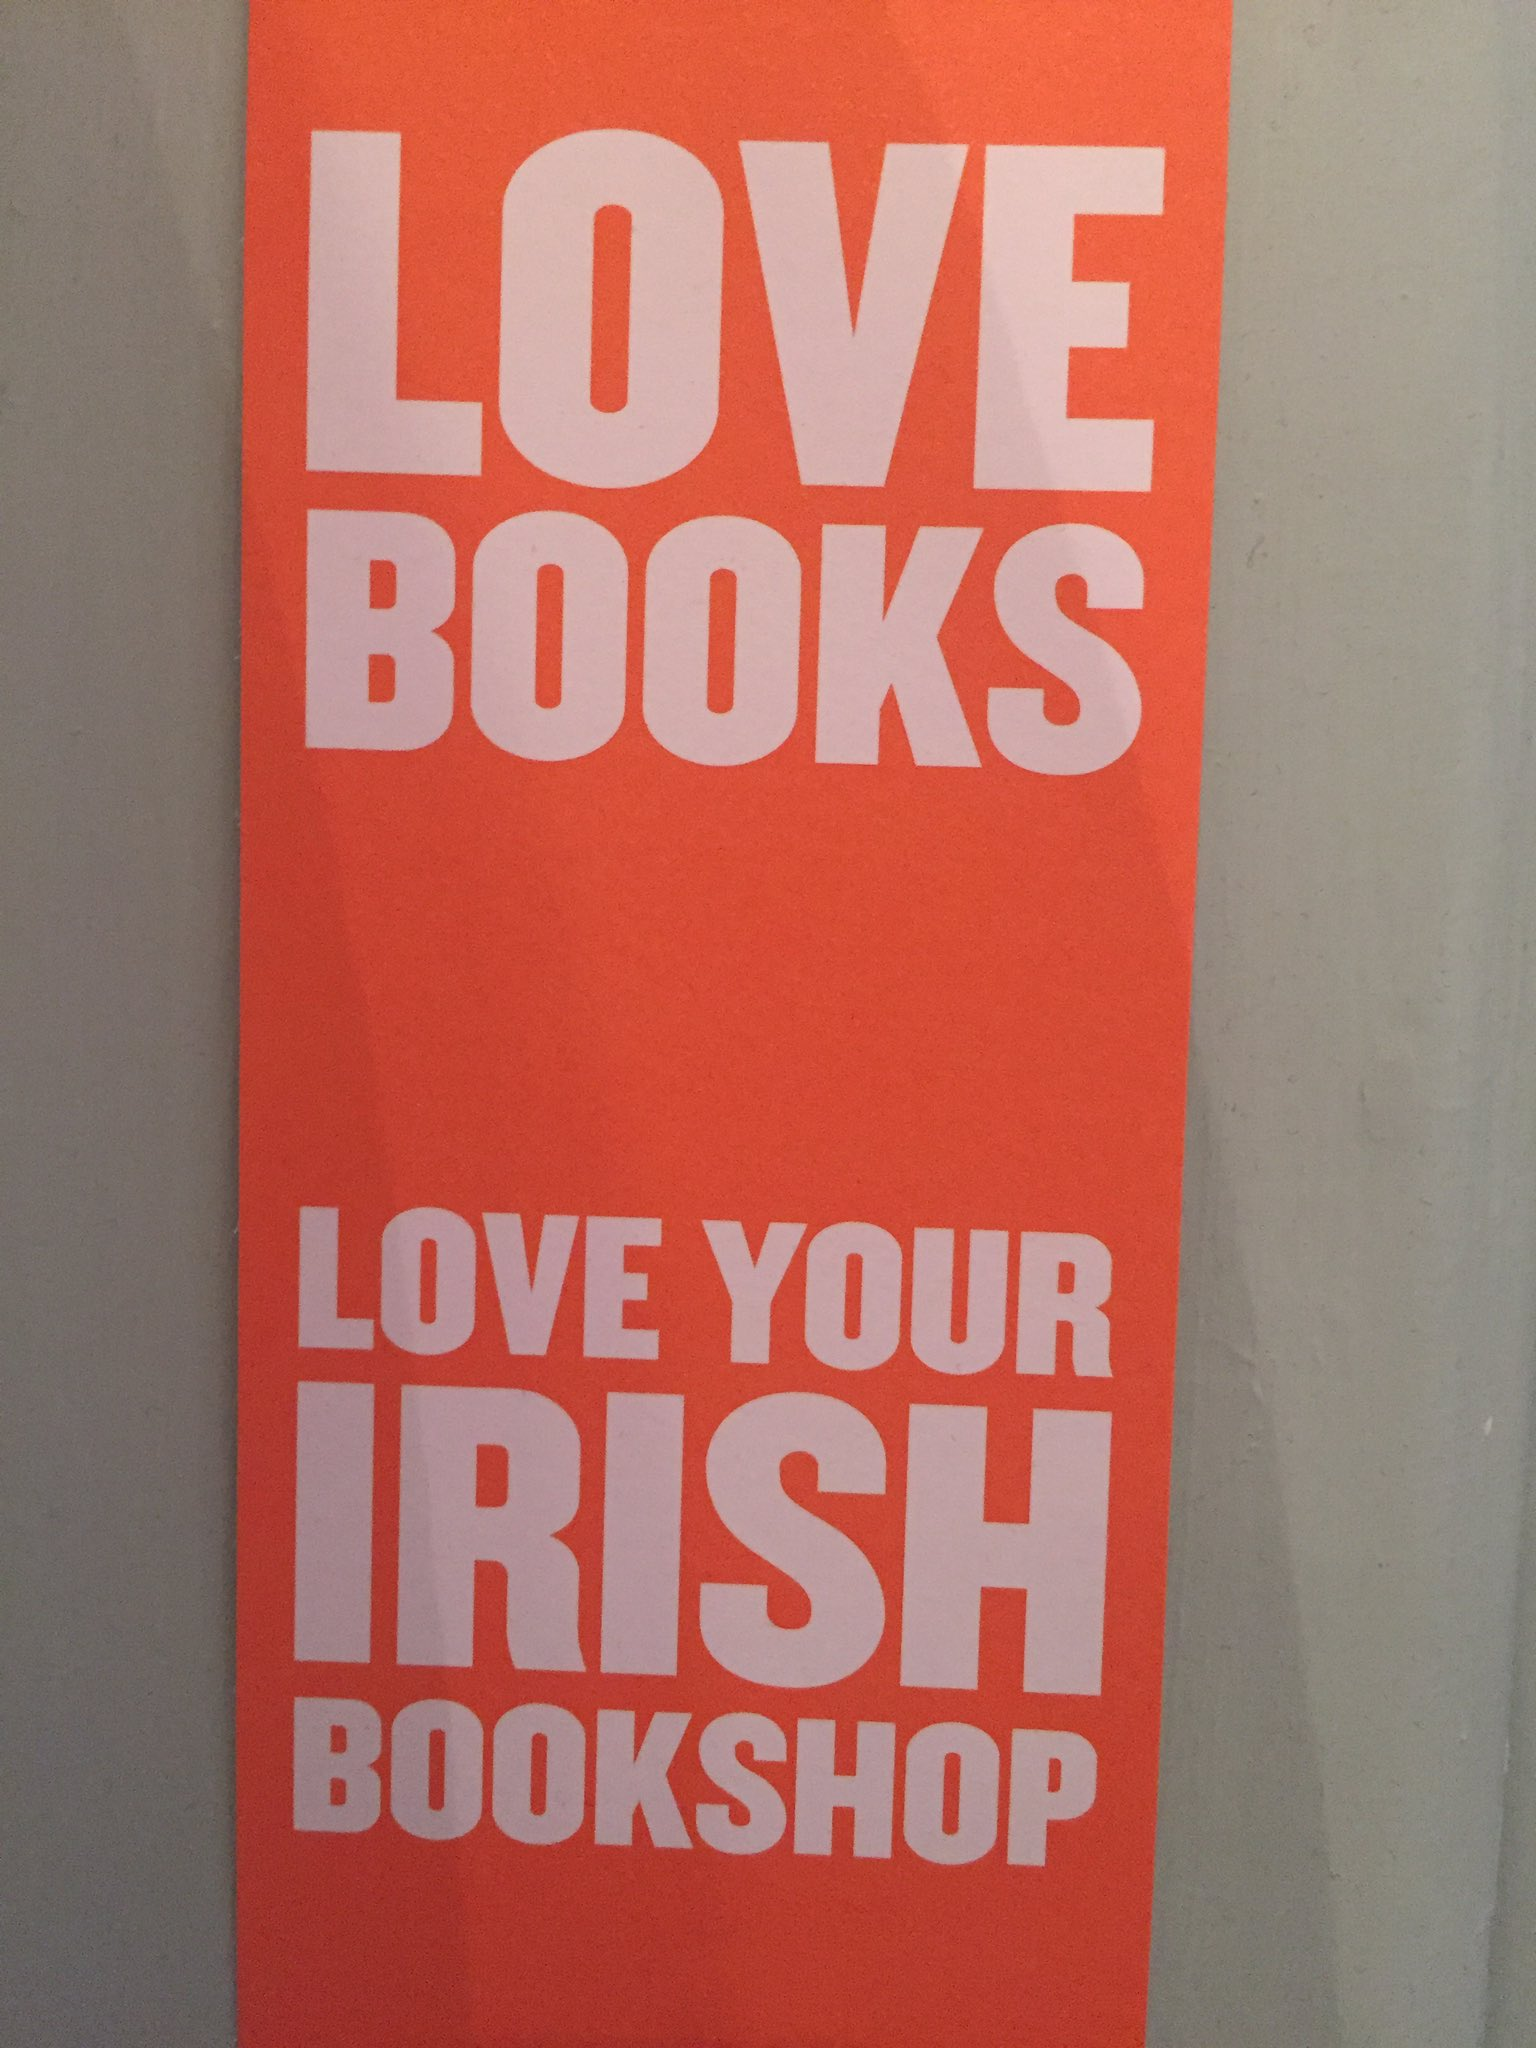 This is what #ibw2017 is all about! #loveyouririshbookshop @RFLong @HazelGaynor @cathryanhoward https://t.co/9z7Wr07FSV